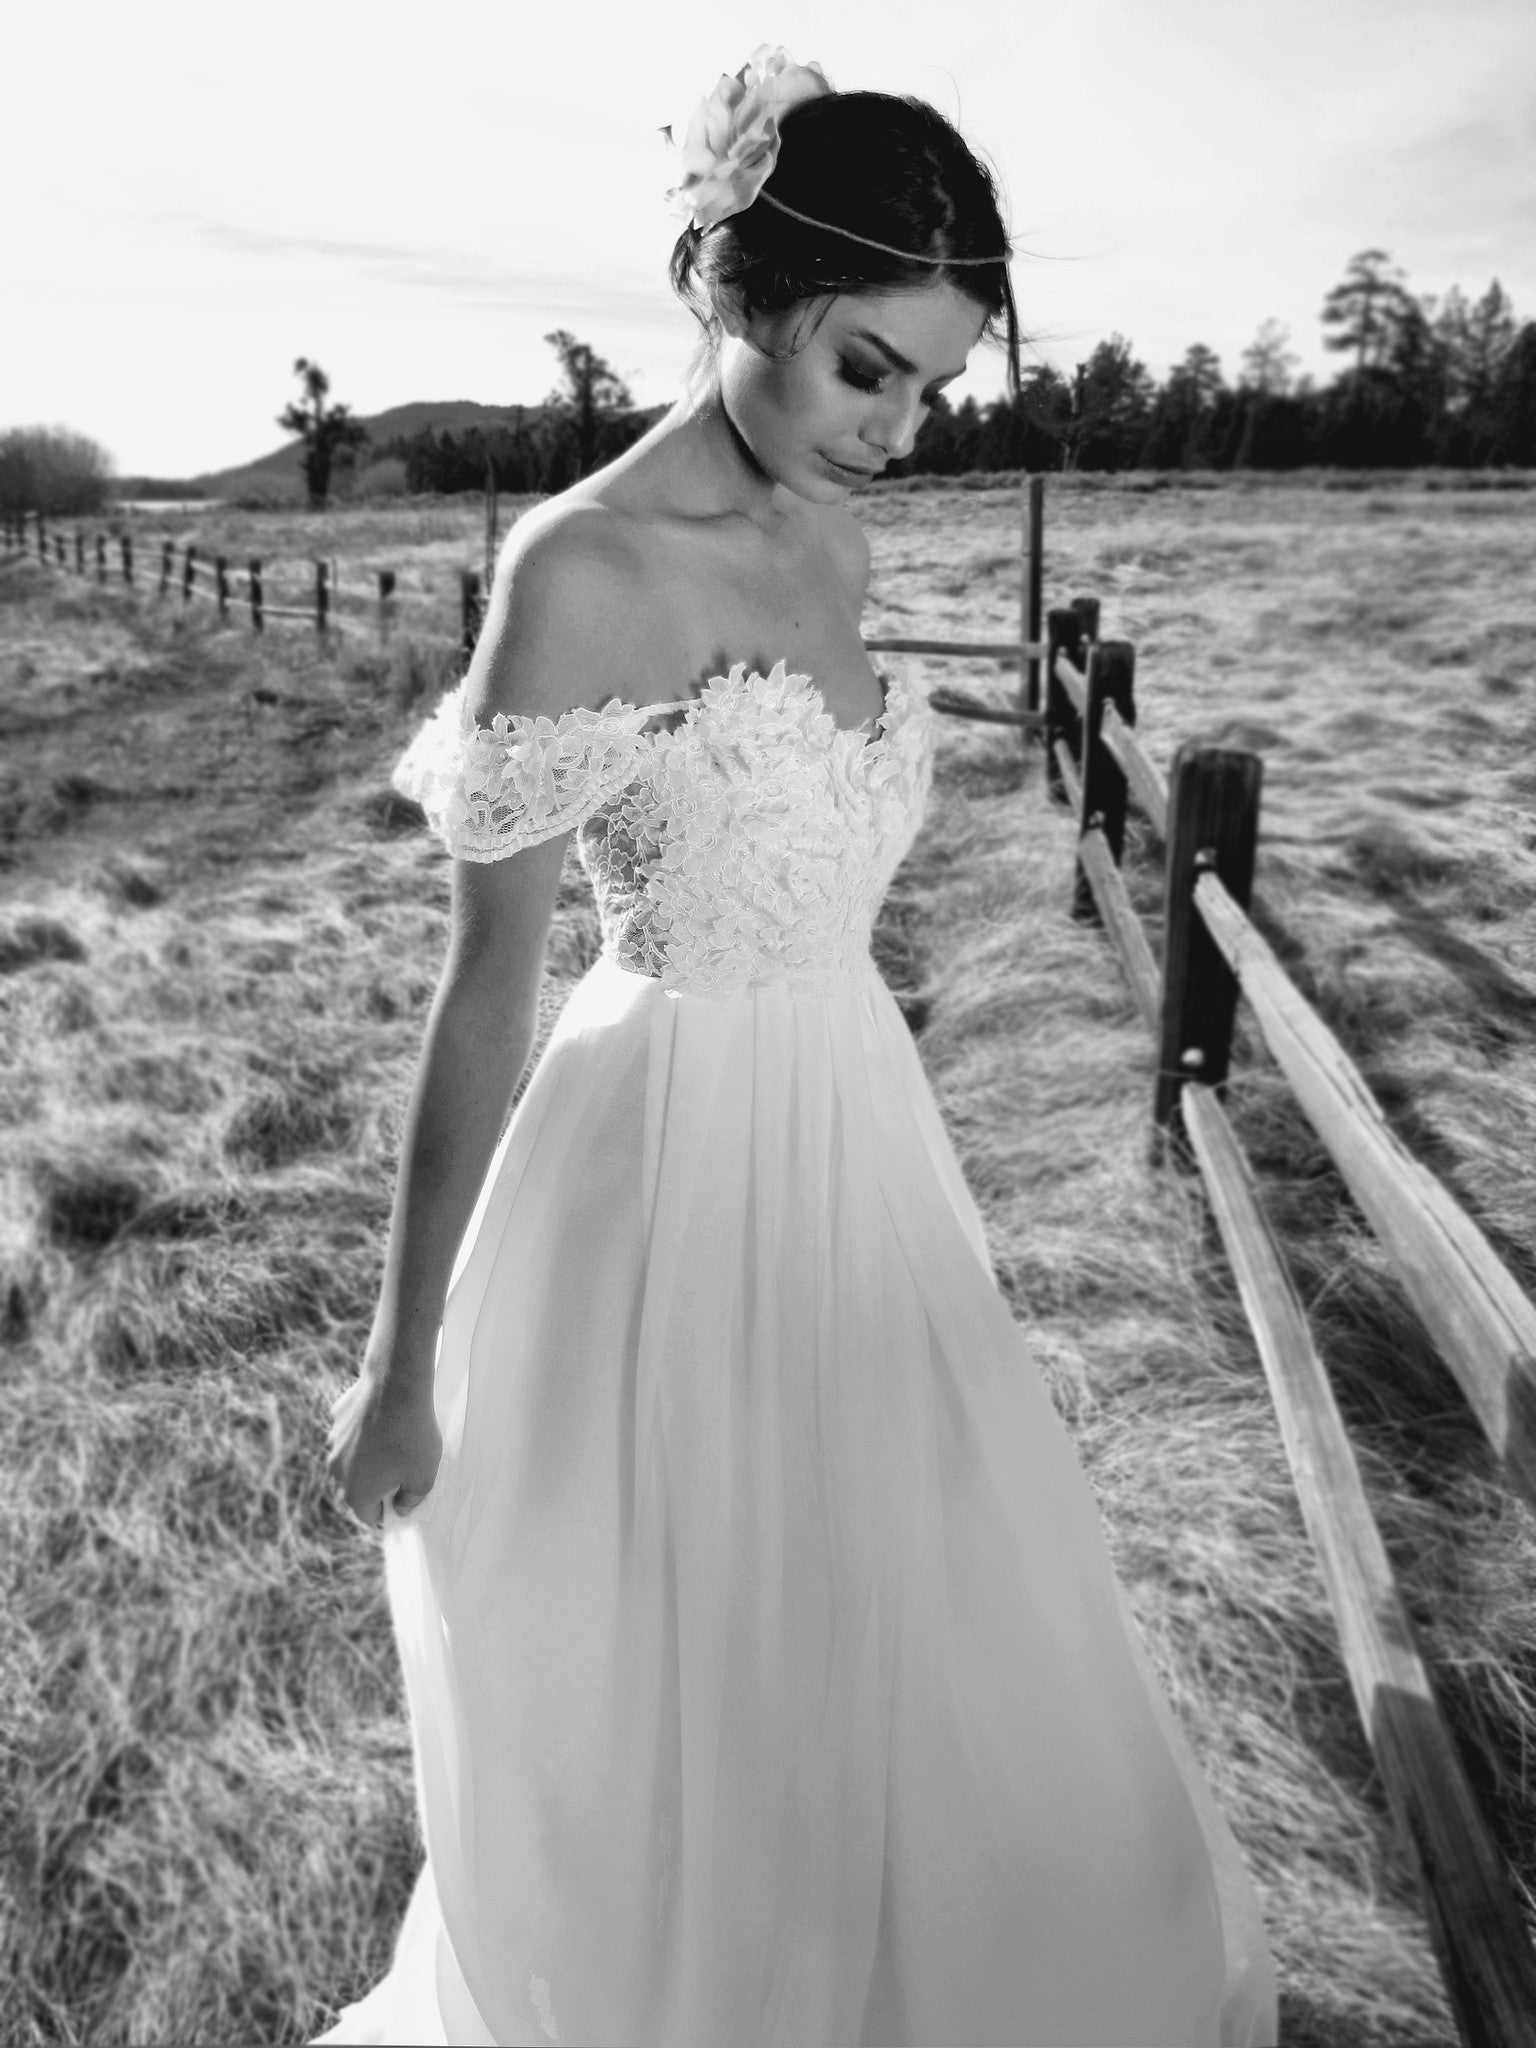 Vintage lace and chiffon off-the-shoulder wedding gown with backless illusion A-line silhouette.